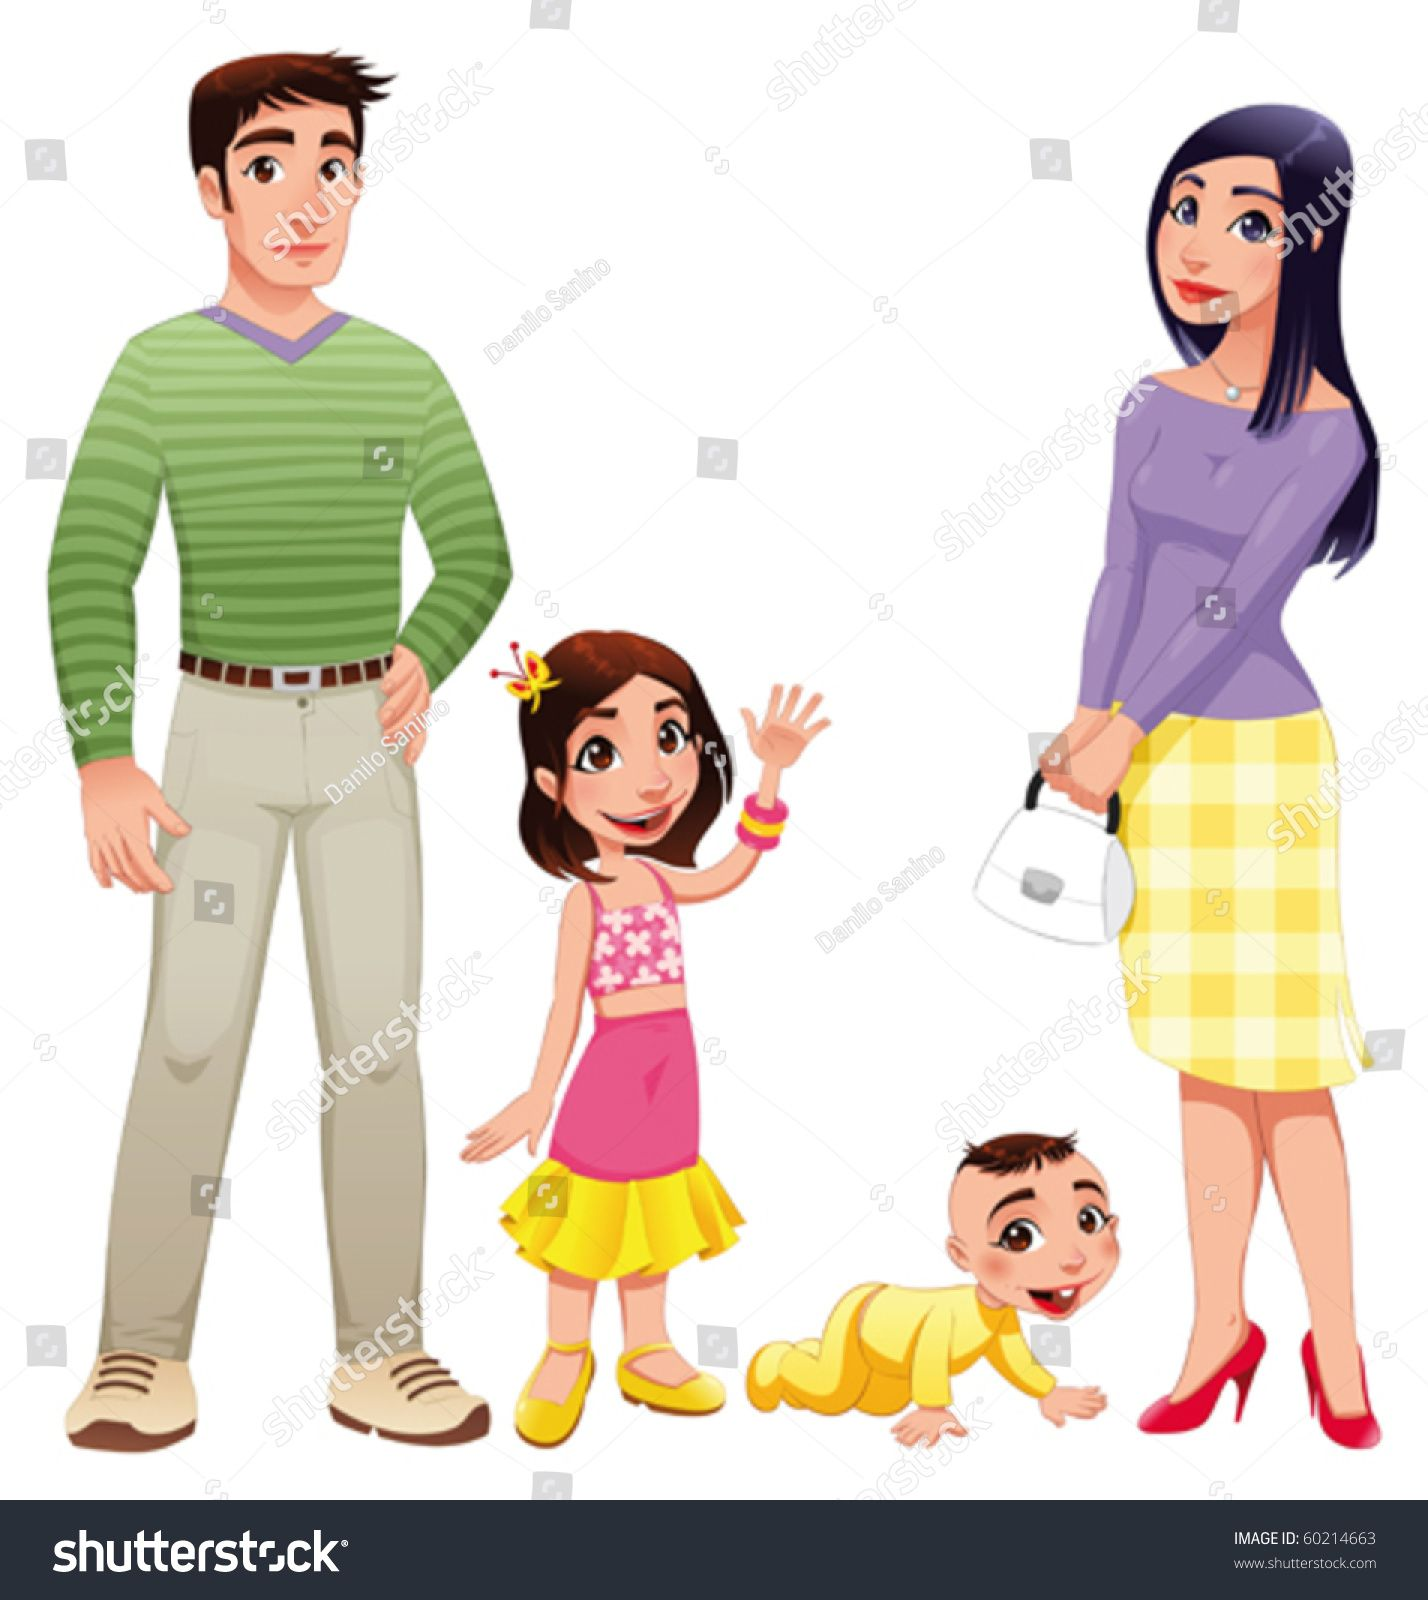 Human family with father. Mother clipart full body